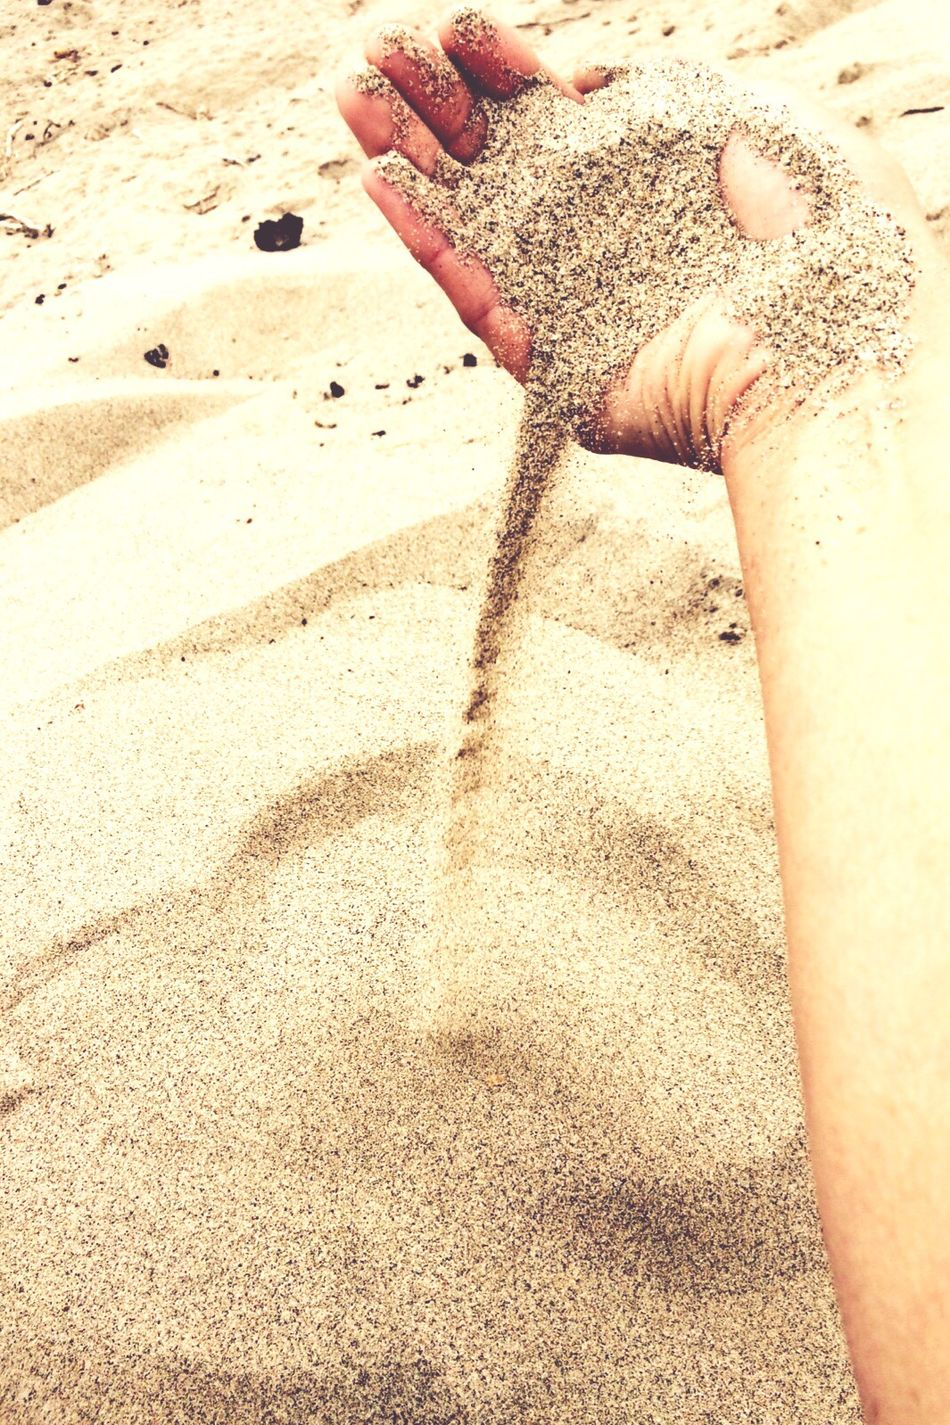 Handful Of Sand Handful Of Wishes Grains Of Sand Real People Human Hand One Person Beach Sand Sunlight Human Body Part Lifestyles Day Leisure Activity Shadow Outdoors Vacations Women Men Nature Close-up Adults Only People Adult